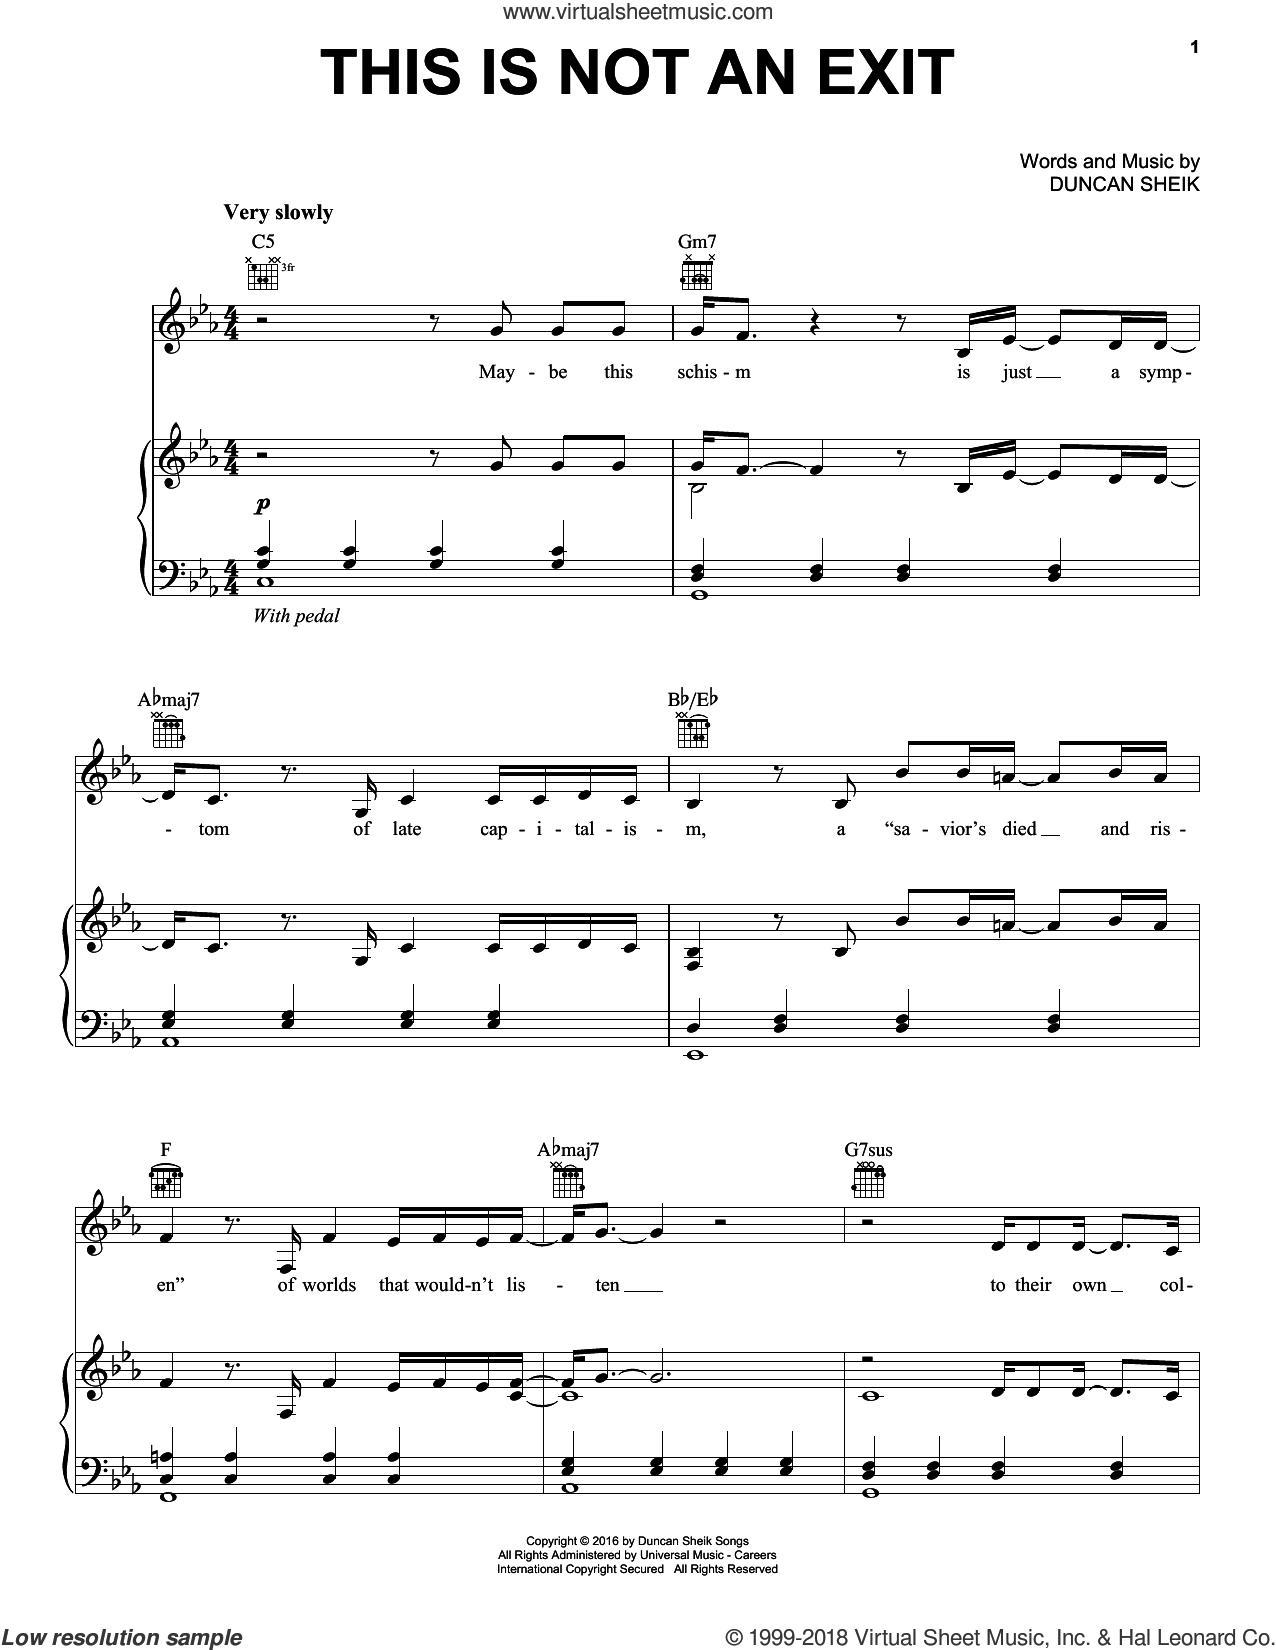 This Is Not An Exit sheet music for voice, piano or guitar by Duncan Sheik